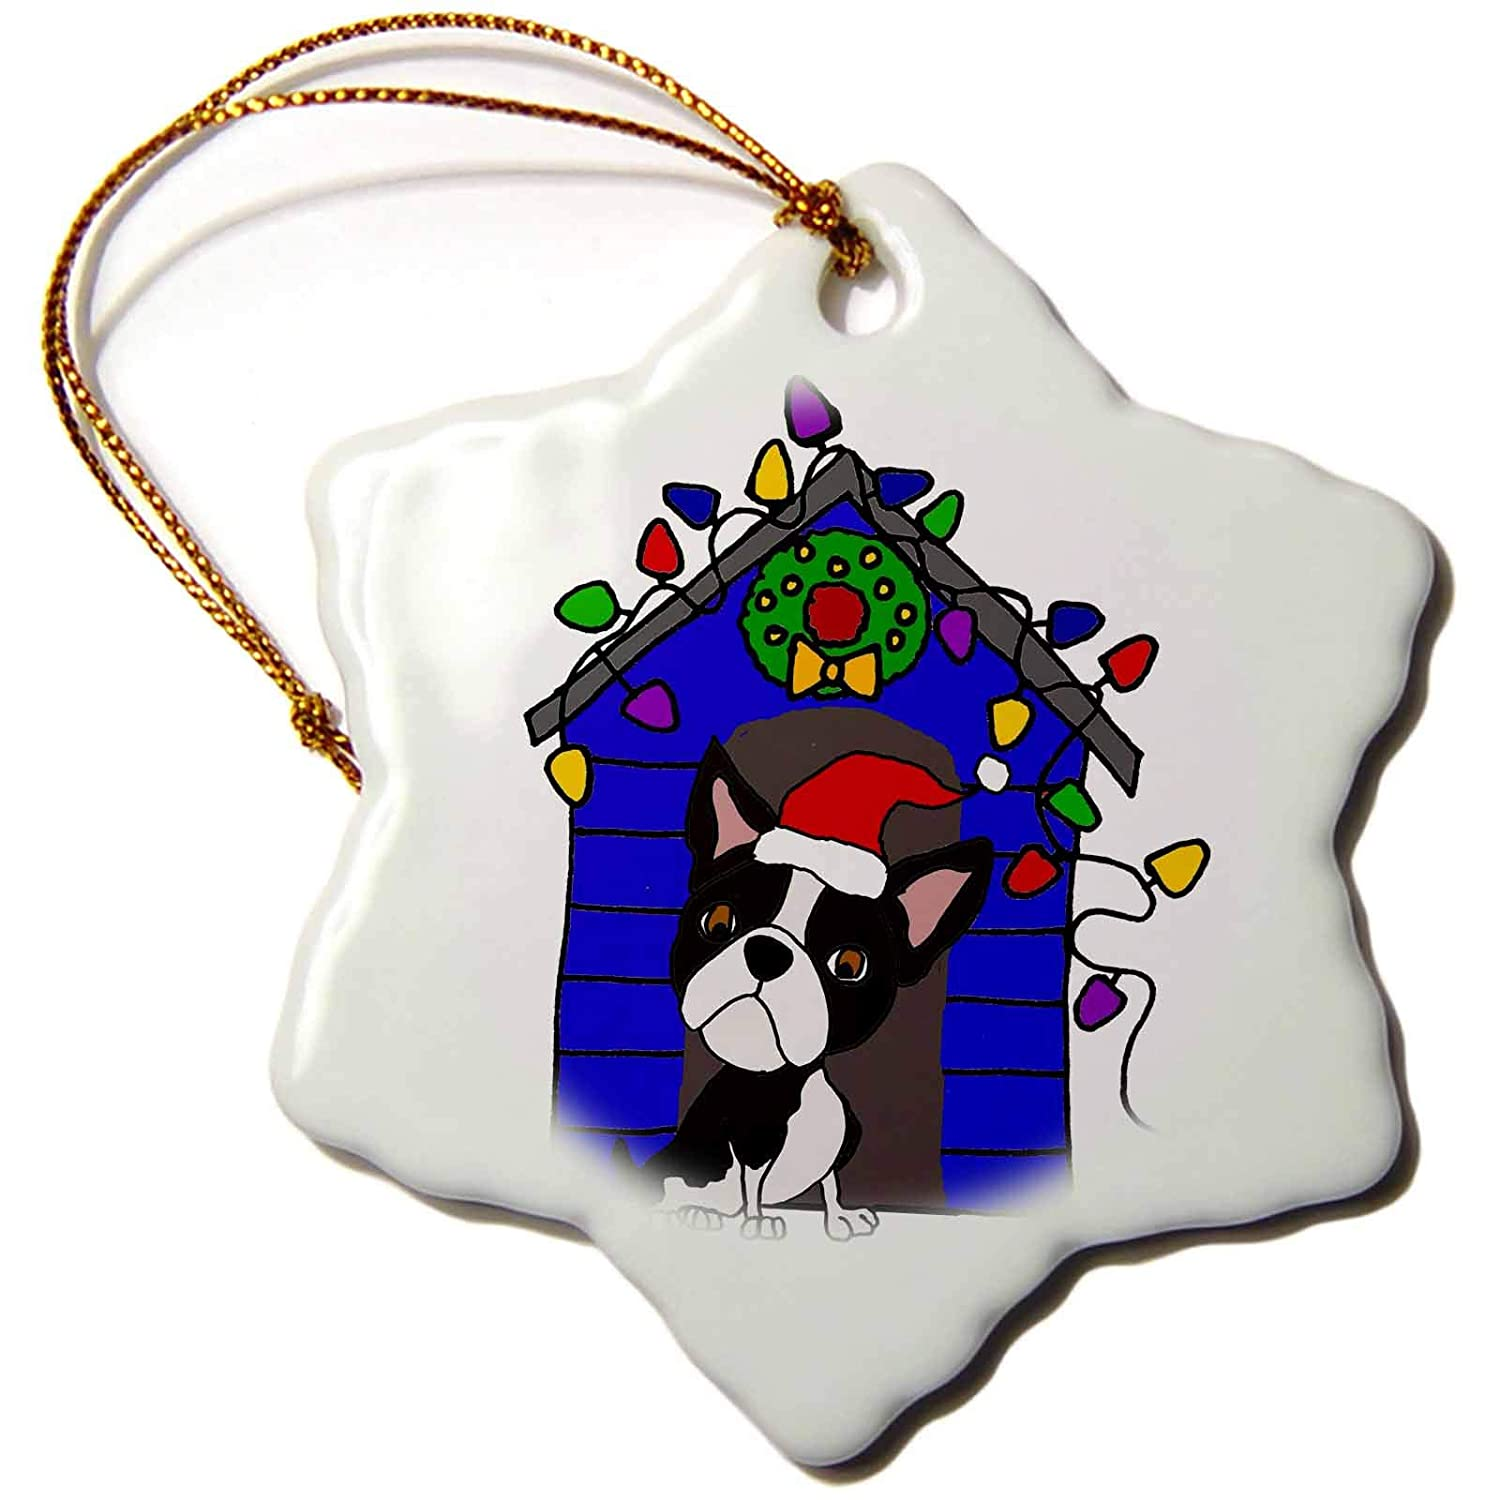 ORN/_270058/_1 3 inch Snowflake Porcelain Ornament 3dRose All Smiles Art Christmas Fun Cool Boston Terrier Dog with Christmas Lights Doghouse